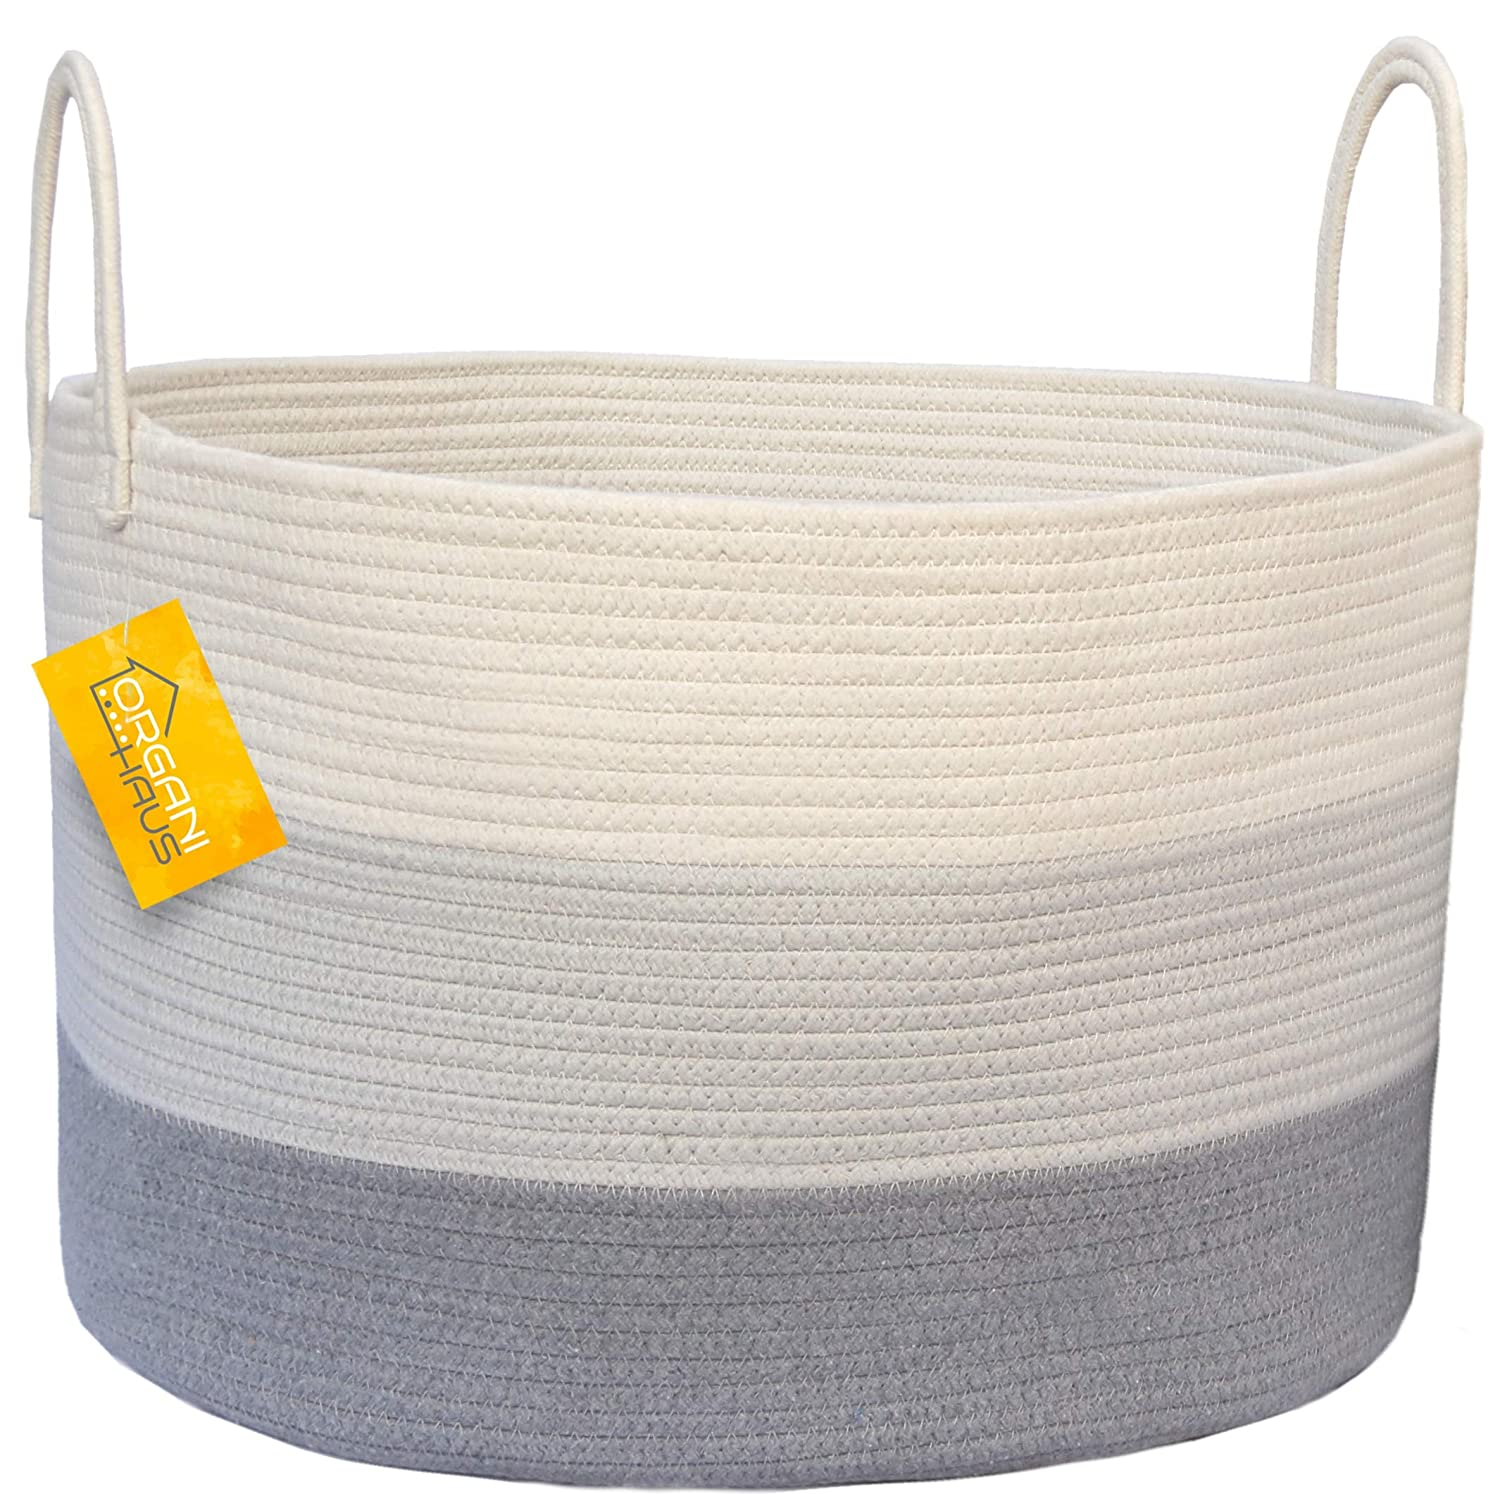 "OrganiHaus XXL Cotton Rope Basket | Wide 20"" x 13.3"" Blanket Storage Basket with Long Handles 